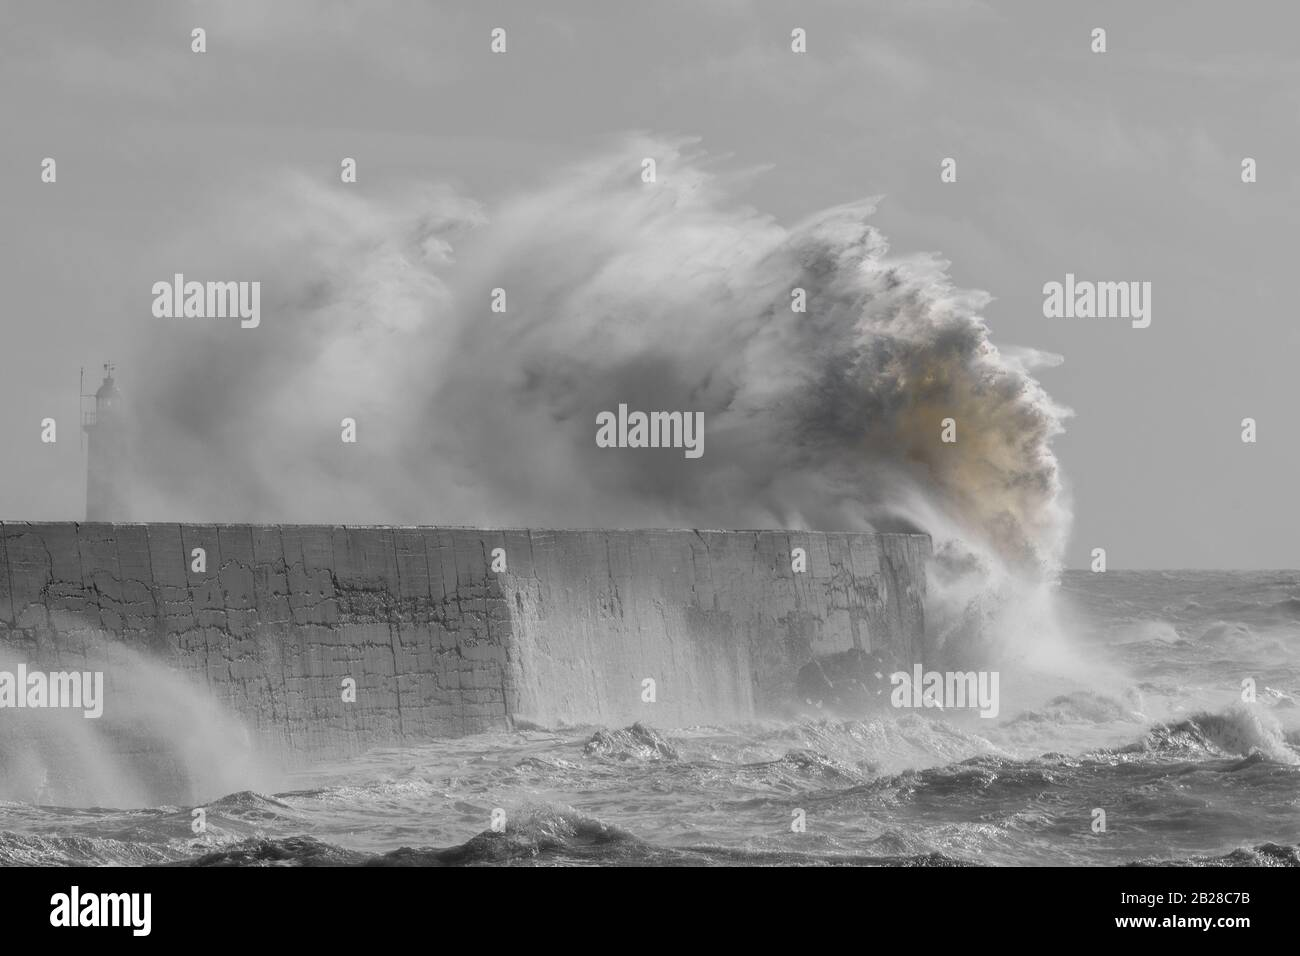 Newhaven, East Sussex on 29th February 2020. Storm Jorge batters England bringing high winds and rain. Stock Photo